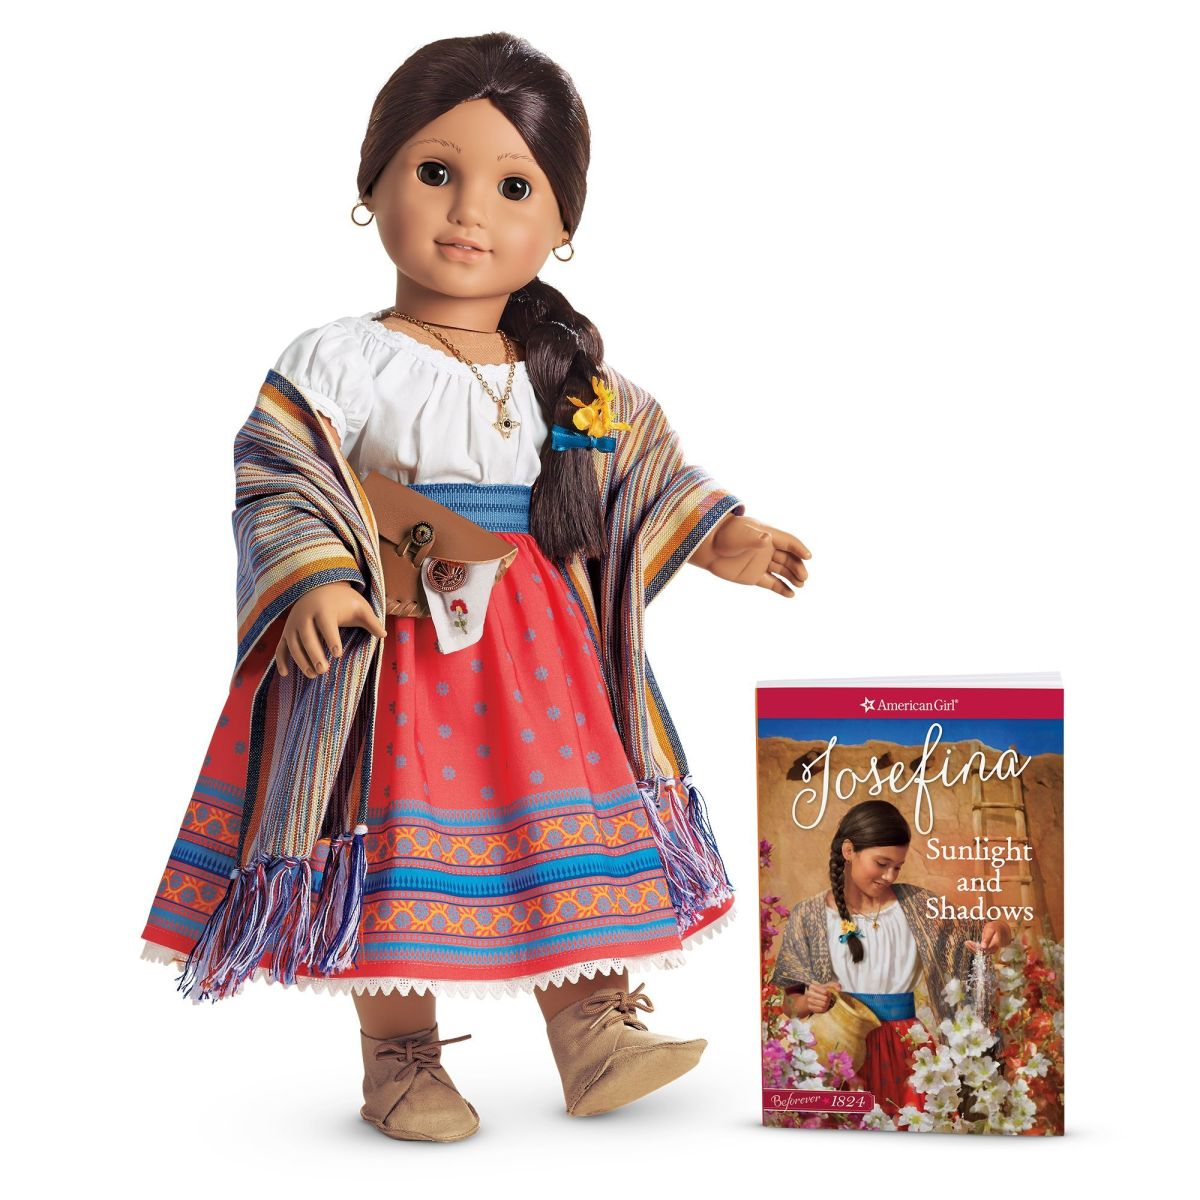 The current version of the Josephine doll which shows that only minor changes have been made to the doll's Meet Outfit and accessories.